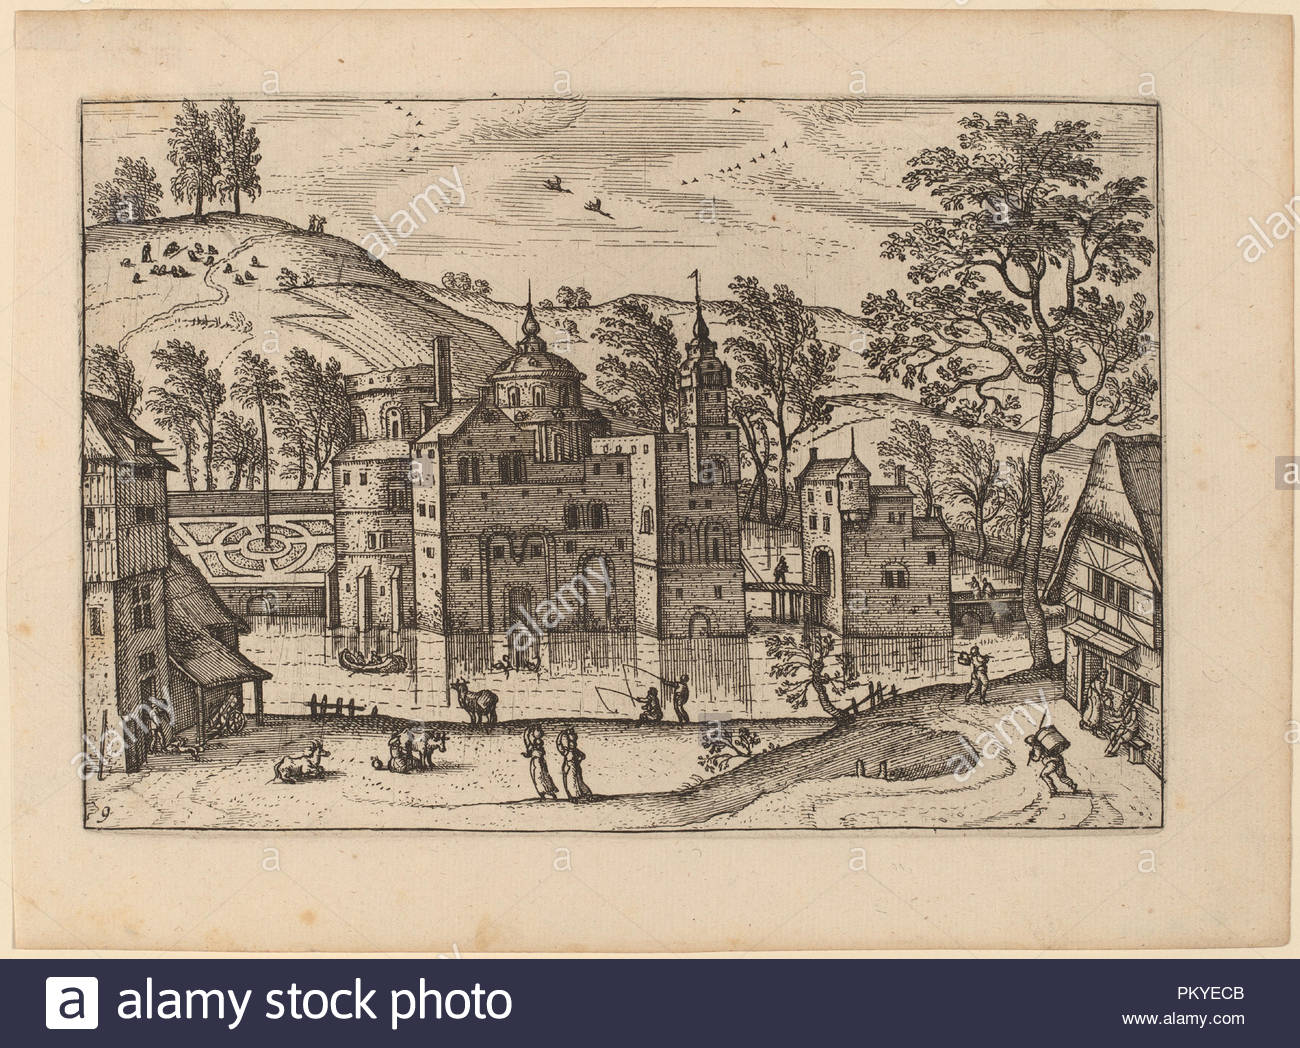 Dated: published in or before 1676. Medium: etching retouched with  engraving. Museum: National Gallery of Art, Washington DC. Author: Carel  Collaert.